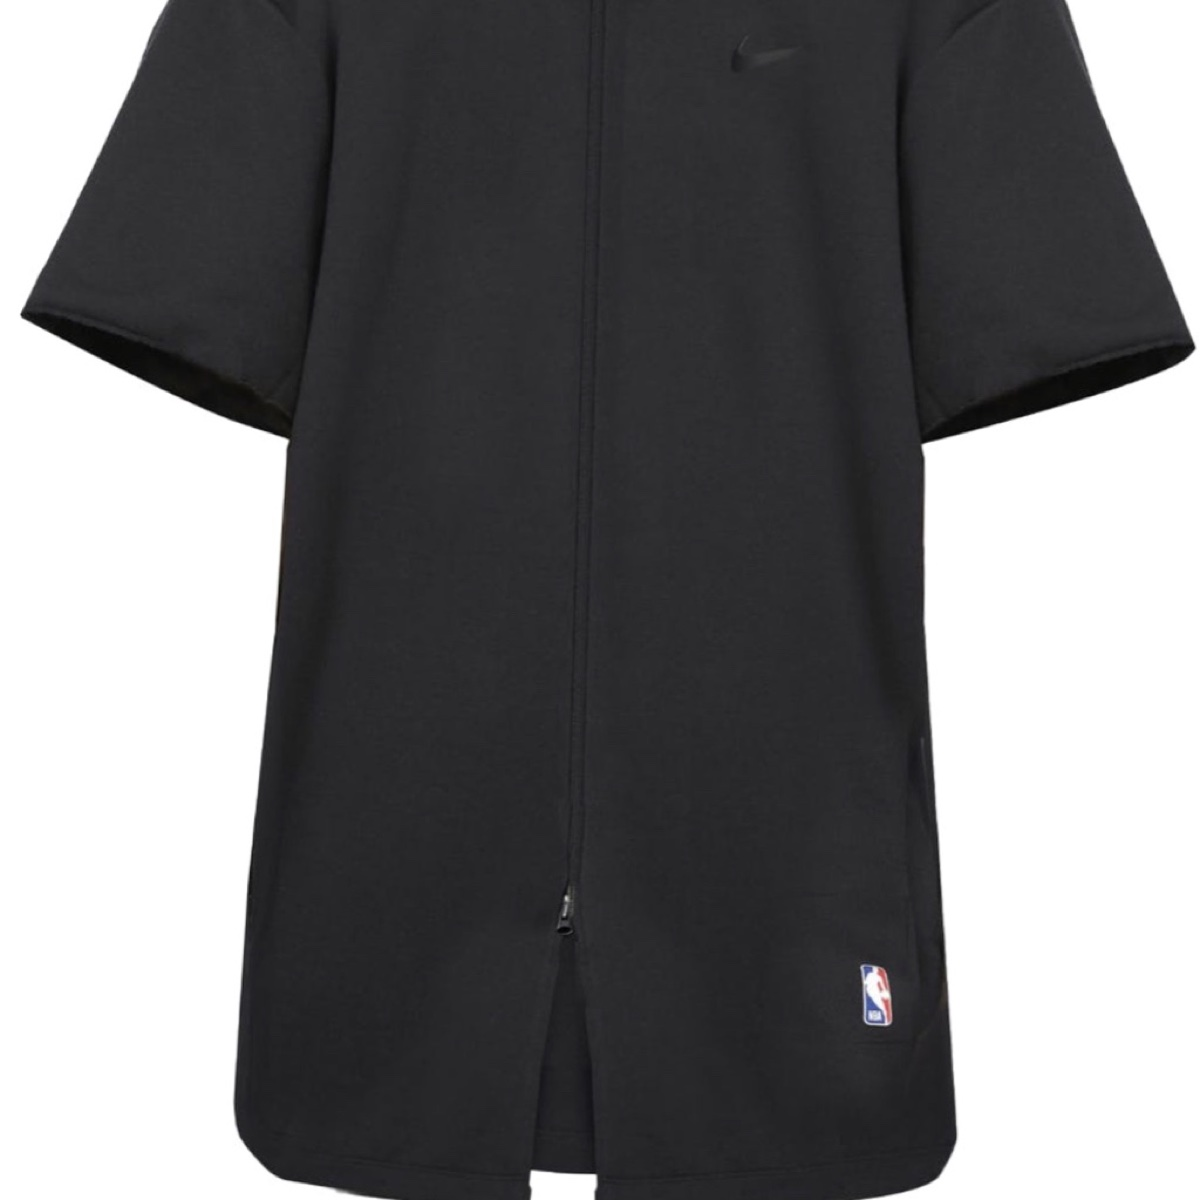 FEAR OF GOD x Nike Warm Up Top Black